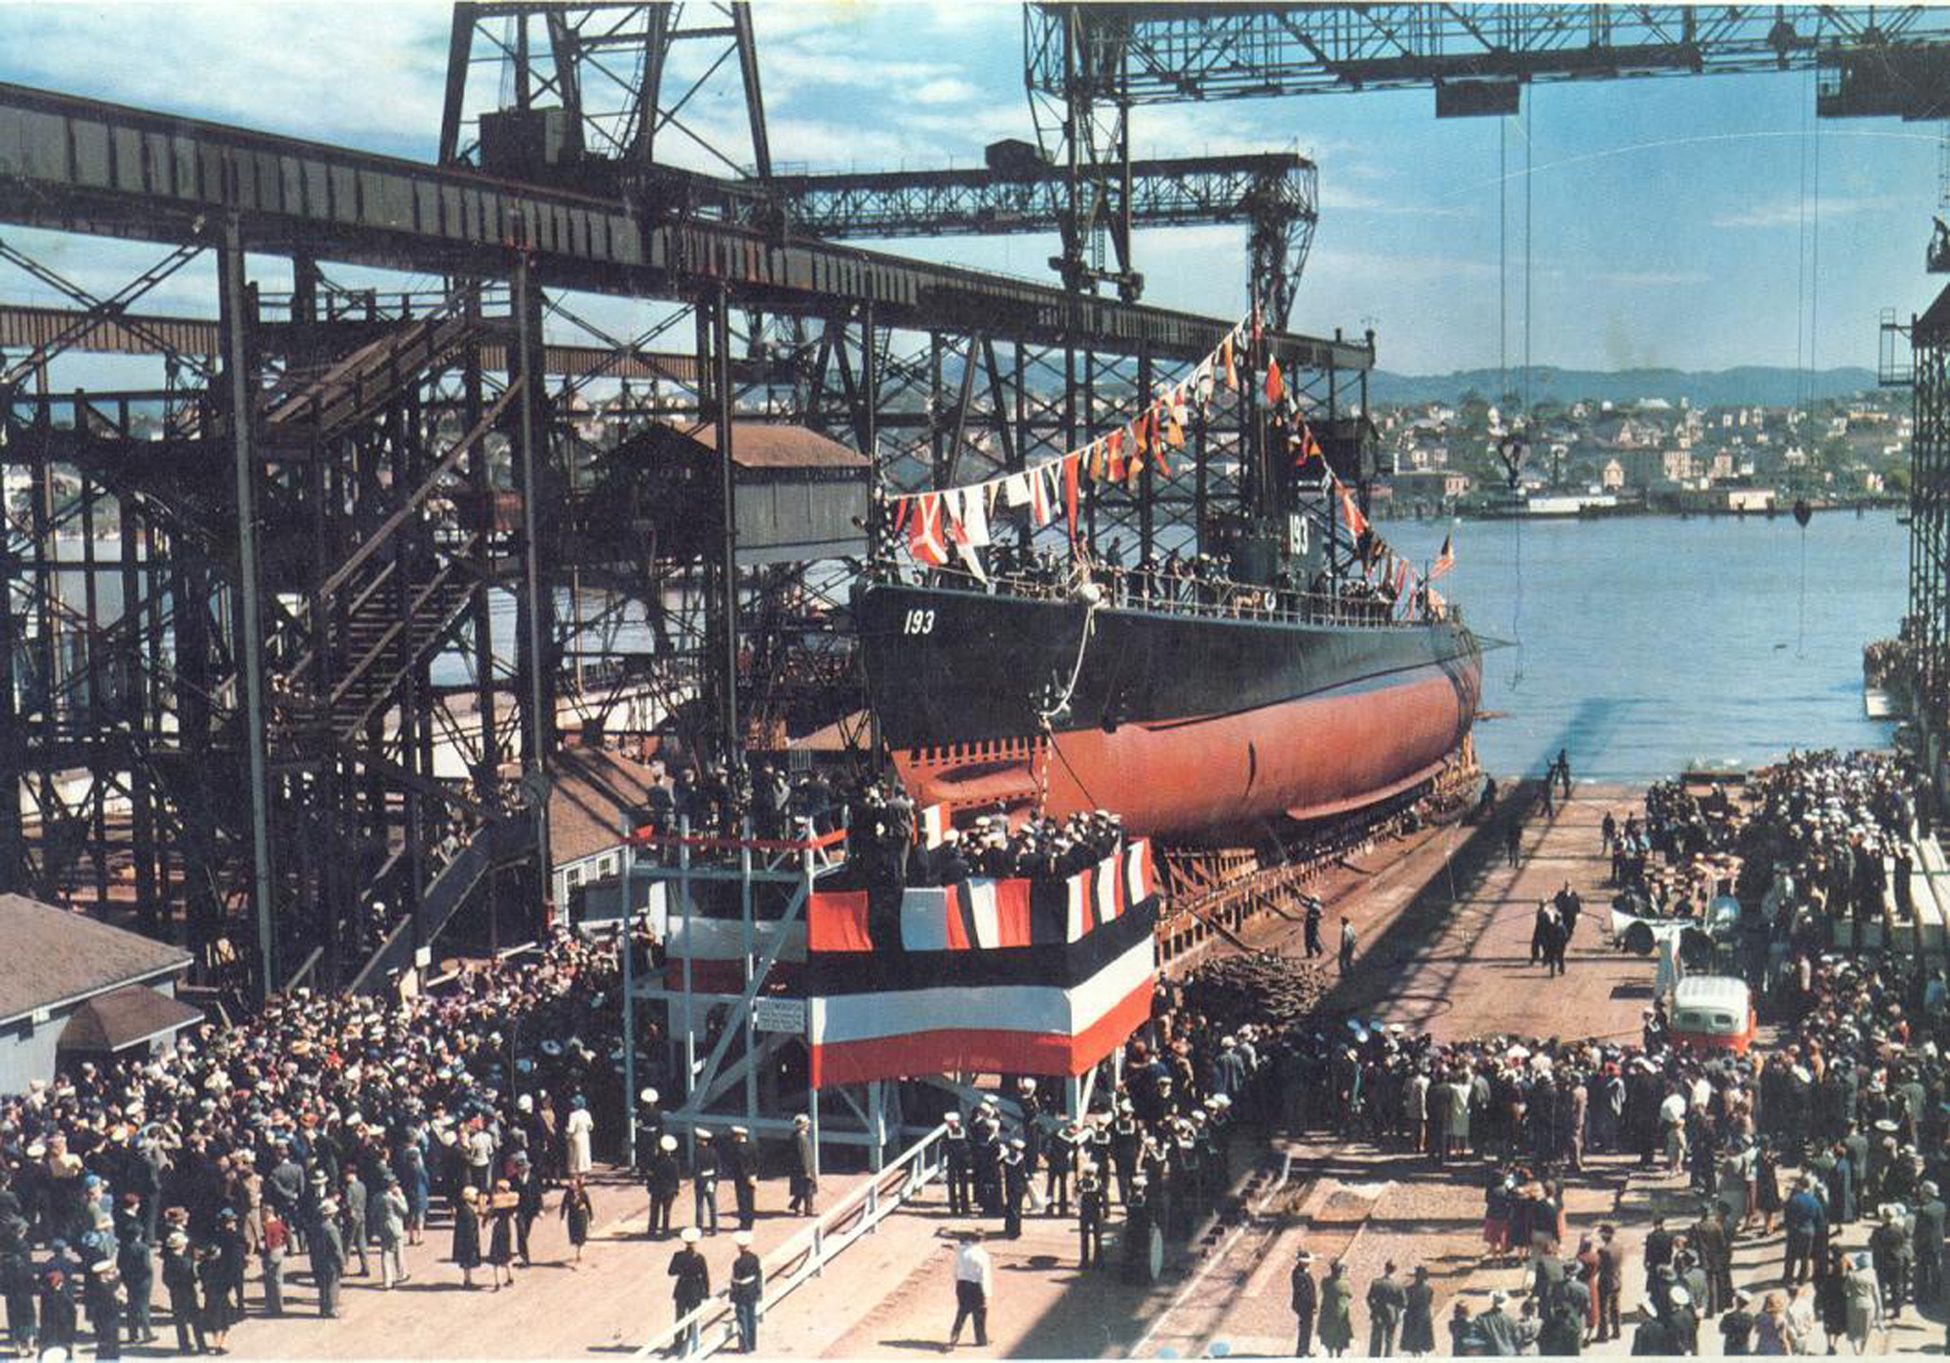 1939 Launch of Sargo-class submarine USS Swordfish (SS-193) at Mare Island Navy Yard, California on April 1st, 1939